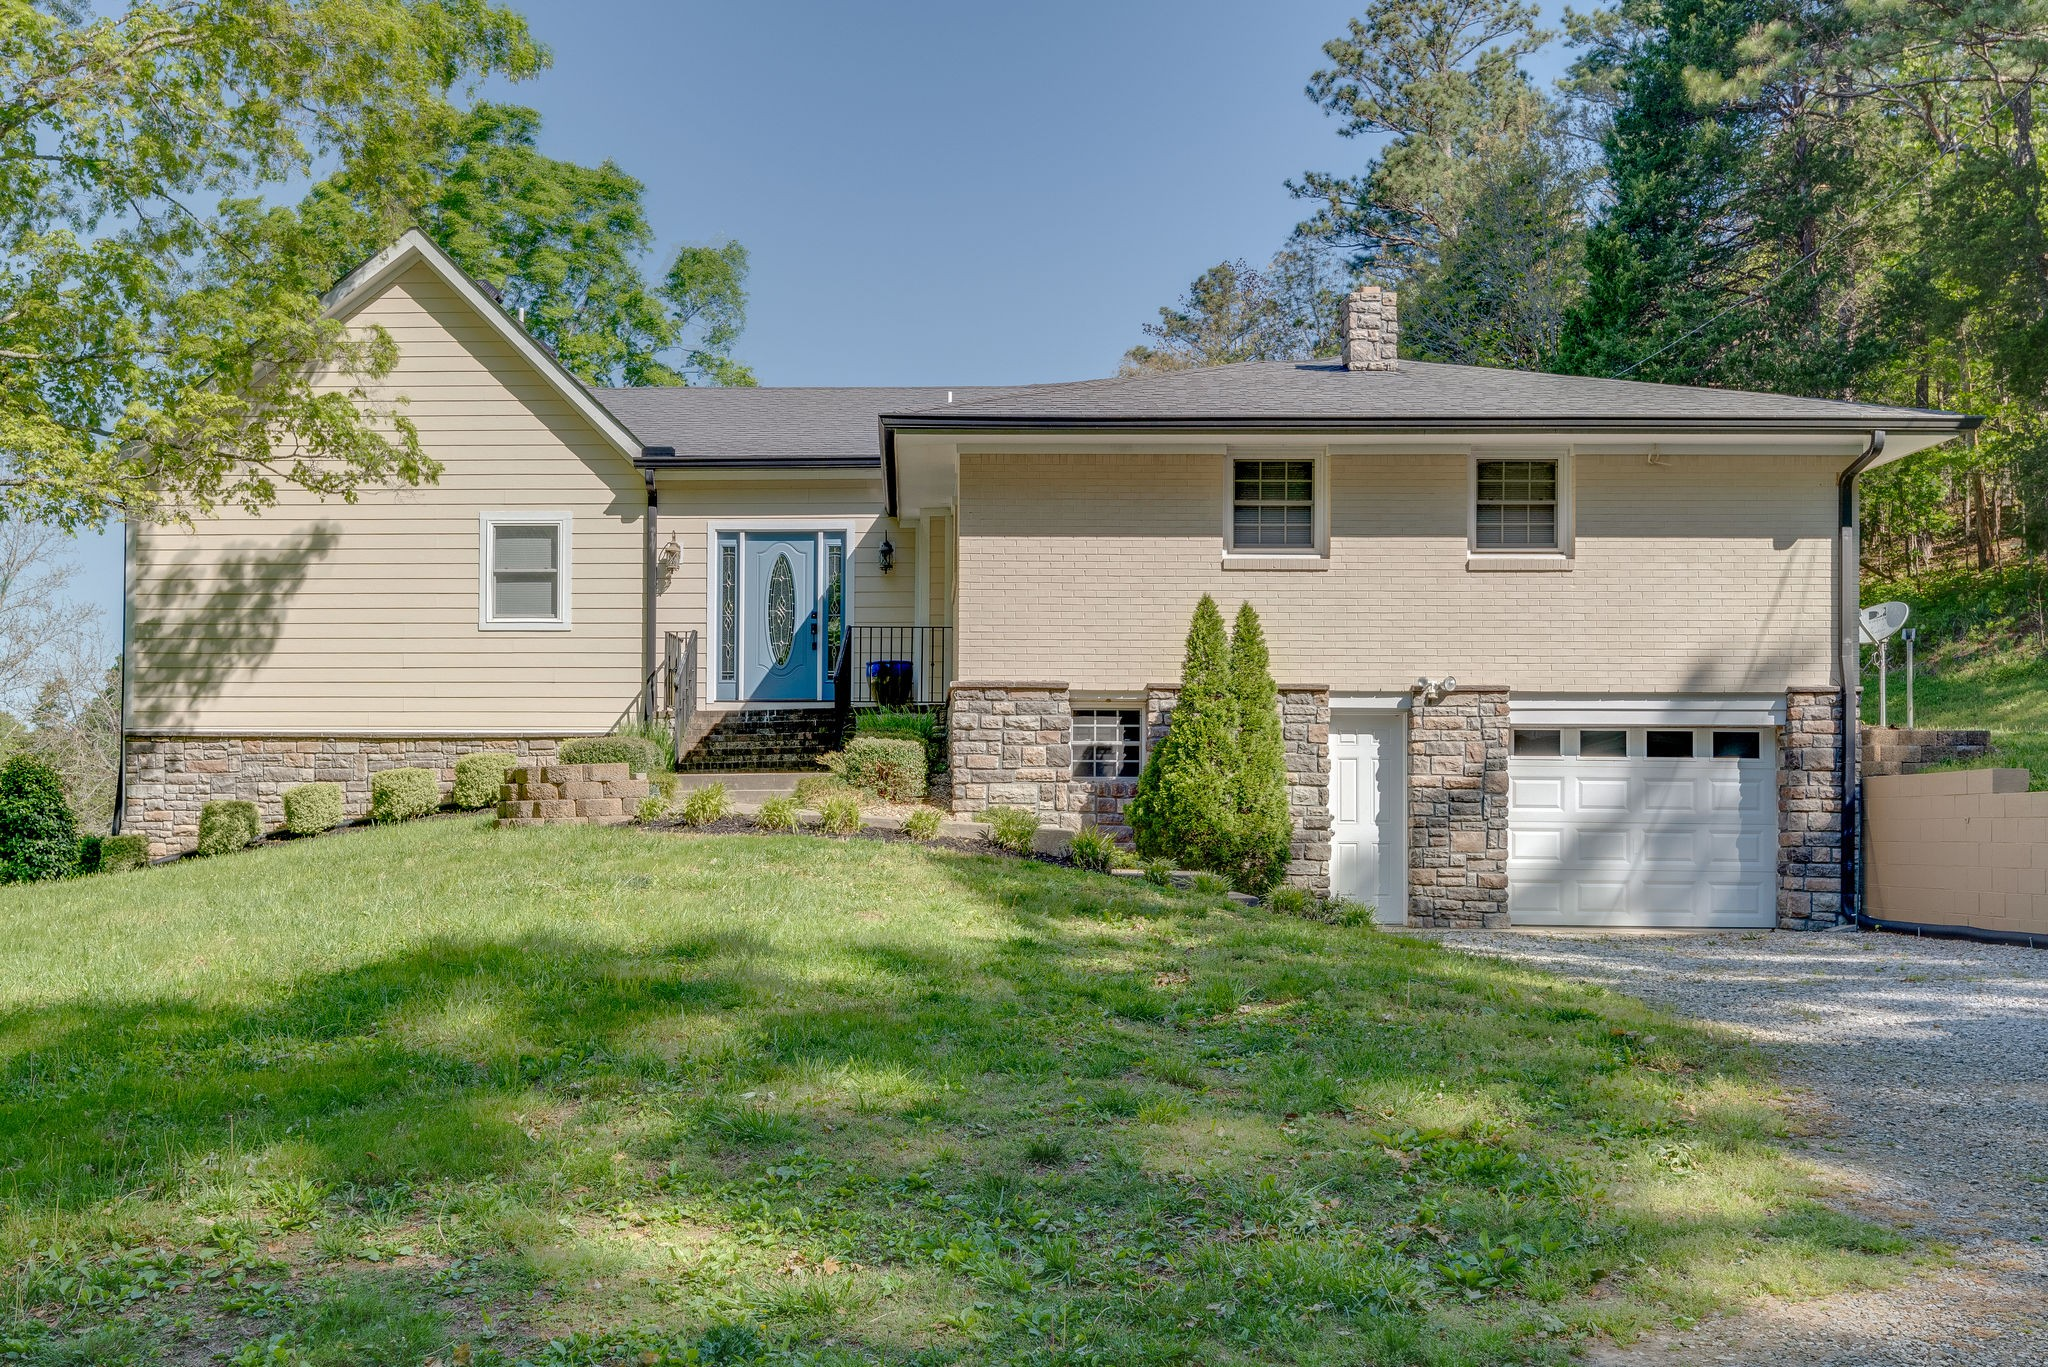 1940 Walnut Grove Rd, Dickson, TN 37055 - Dickson, TN real estate listing